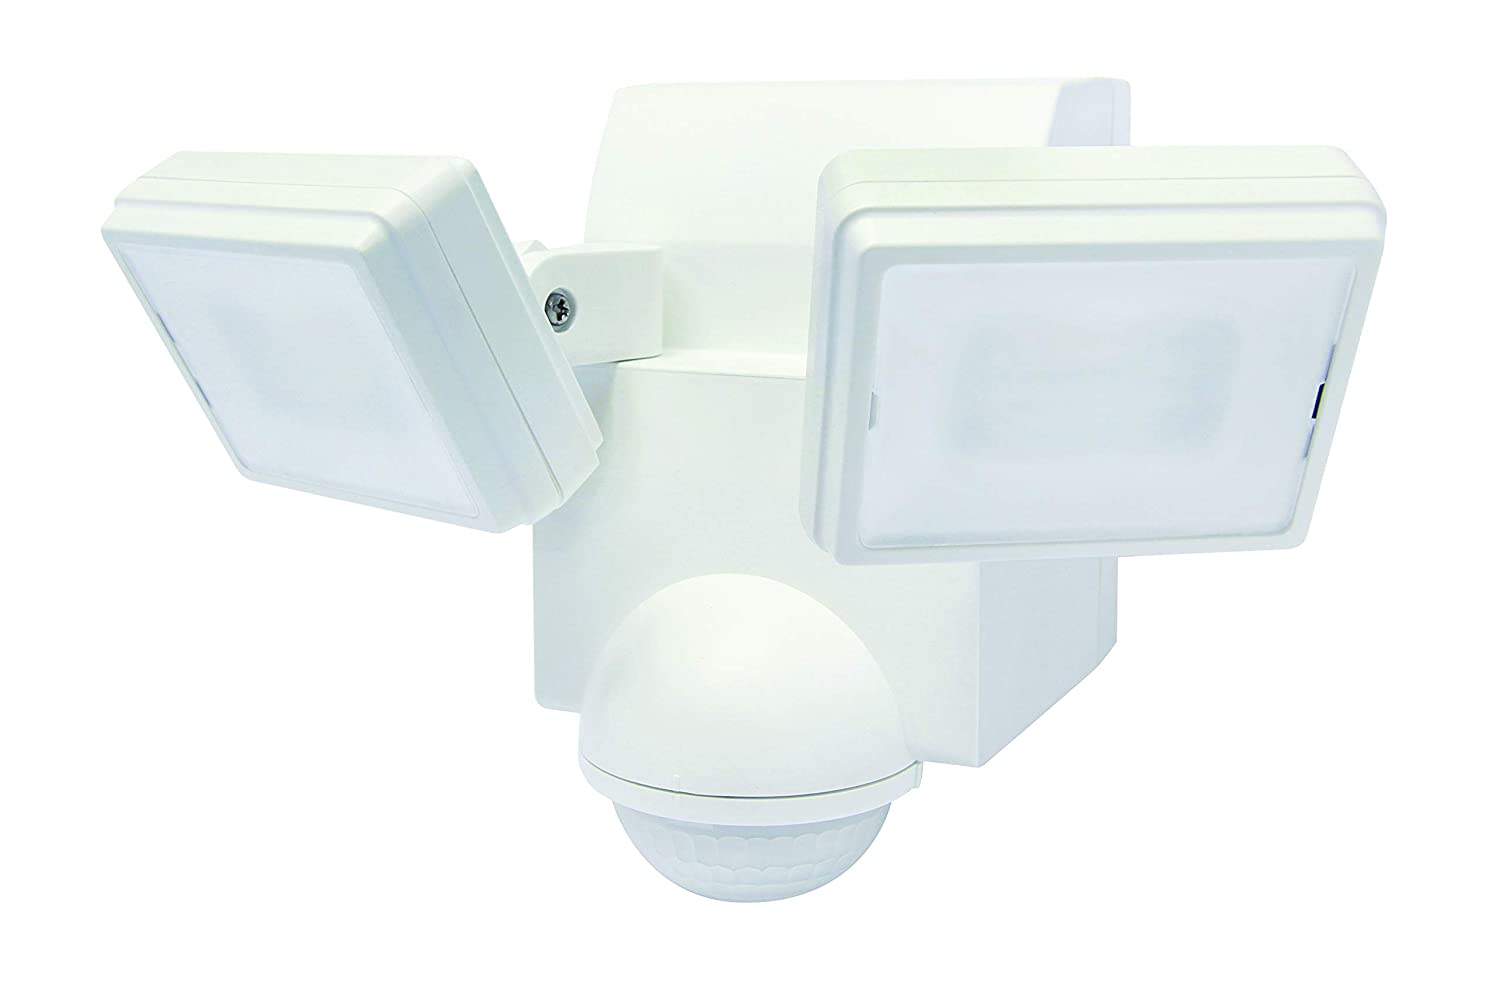 LB1870QWH 700 Lumen Battery Operated LED Motion Security Light, Twin Head (Includes L-Bracket for Easy Mount) (White)